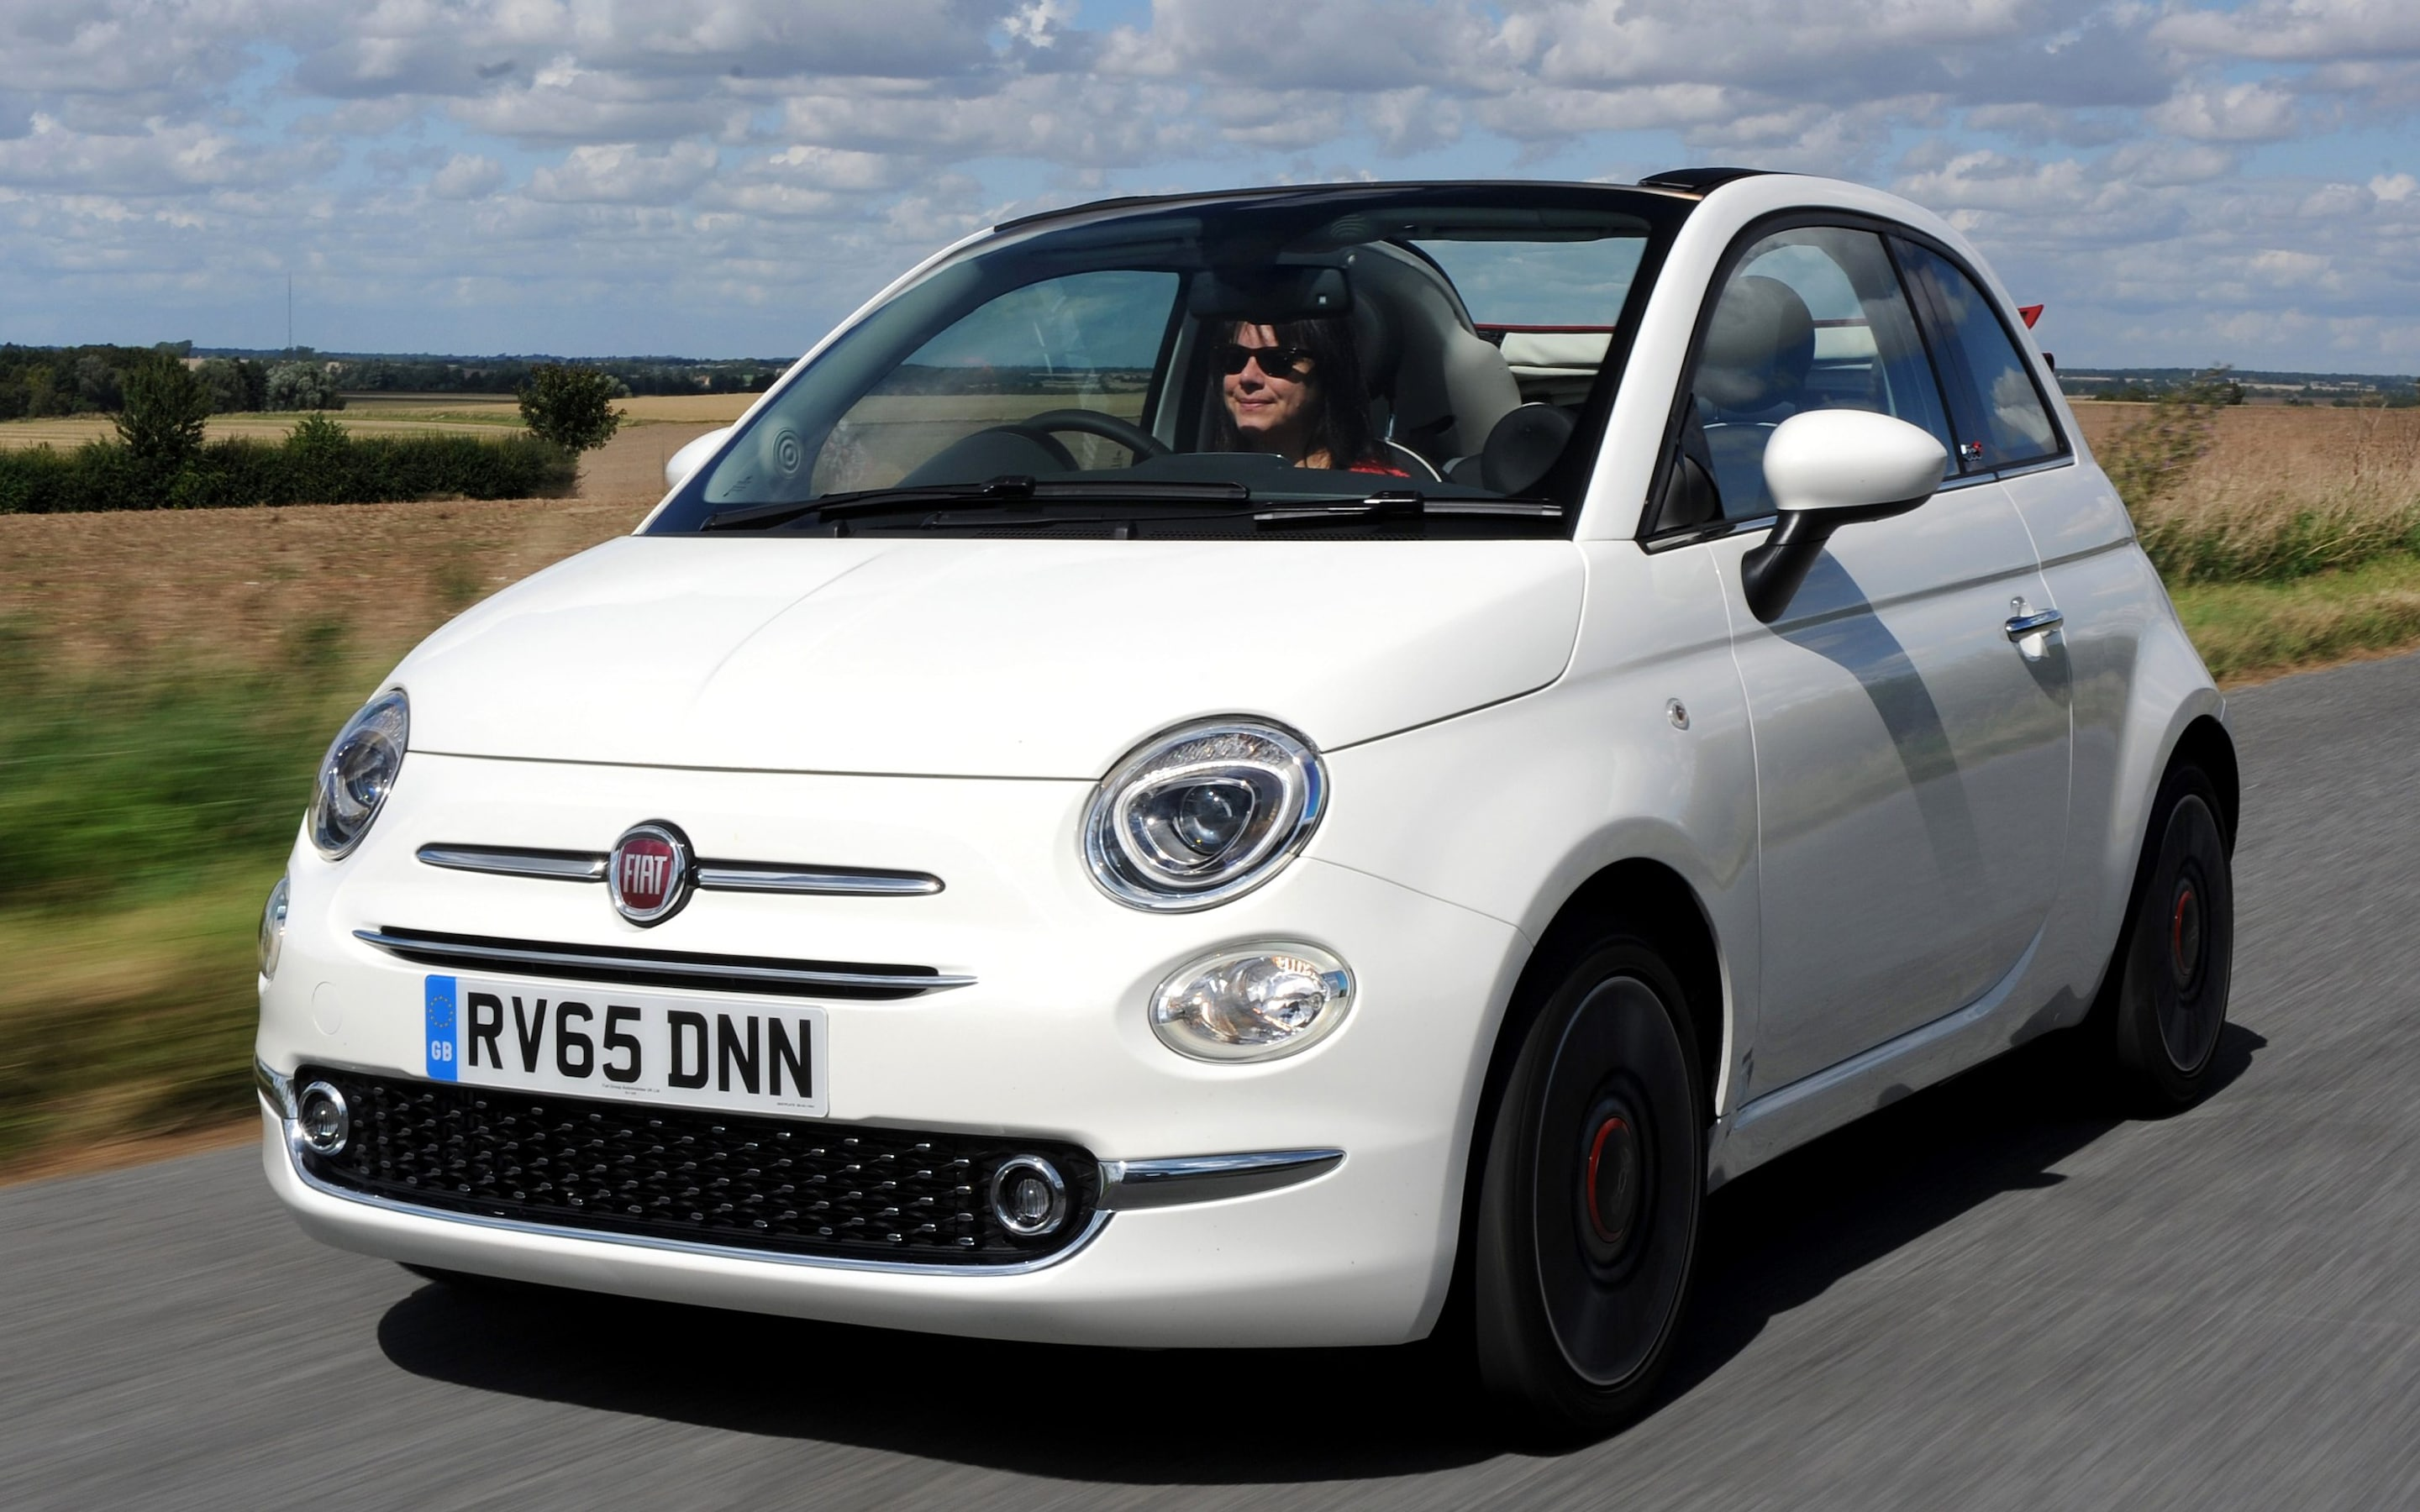 fiat 500 review a cheerful runabout for the style conscious airbag sensor locations besides fiat 500e on fiat 500 engine diagram [ 2880 x 1800 Pixel ]